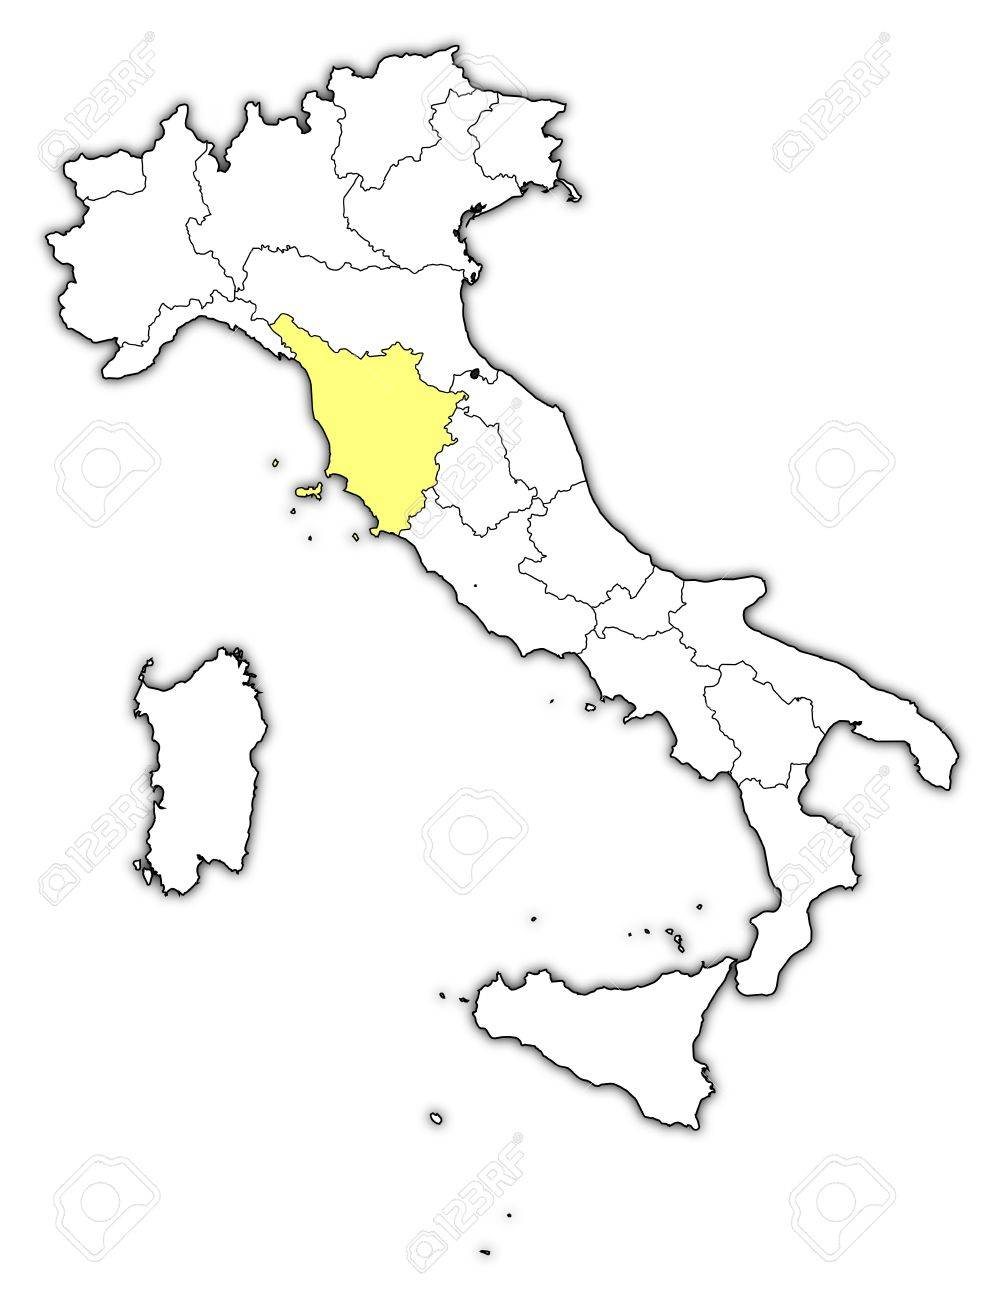 Political Map Of Italy With The Several Regions Where Tuscany - Tuscany on italy map